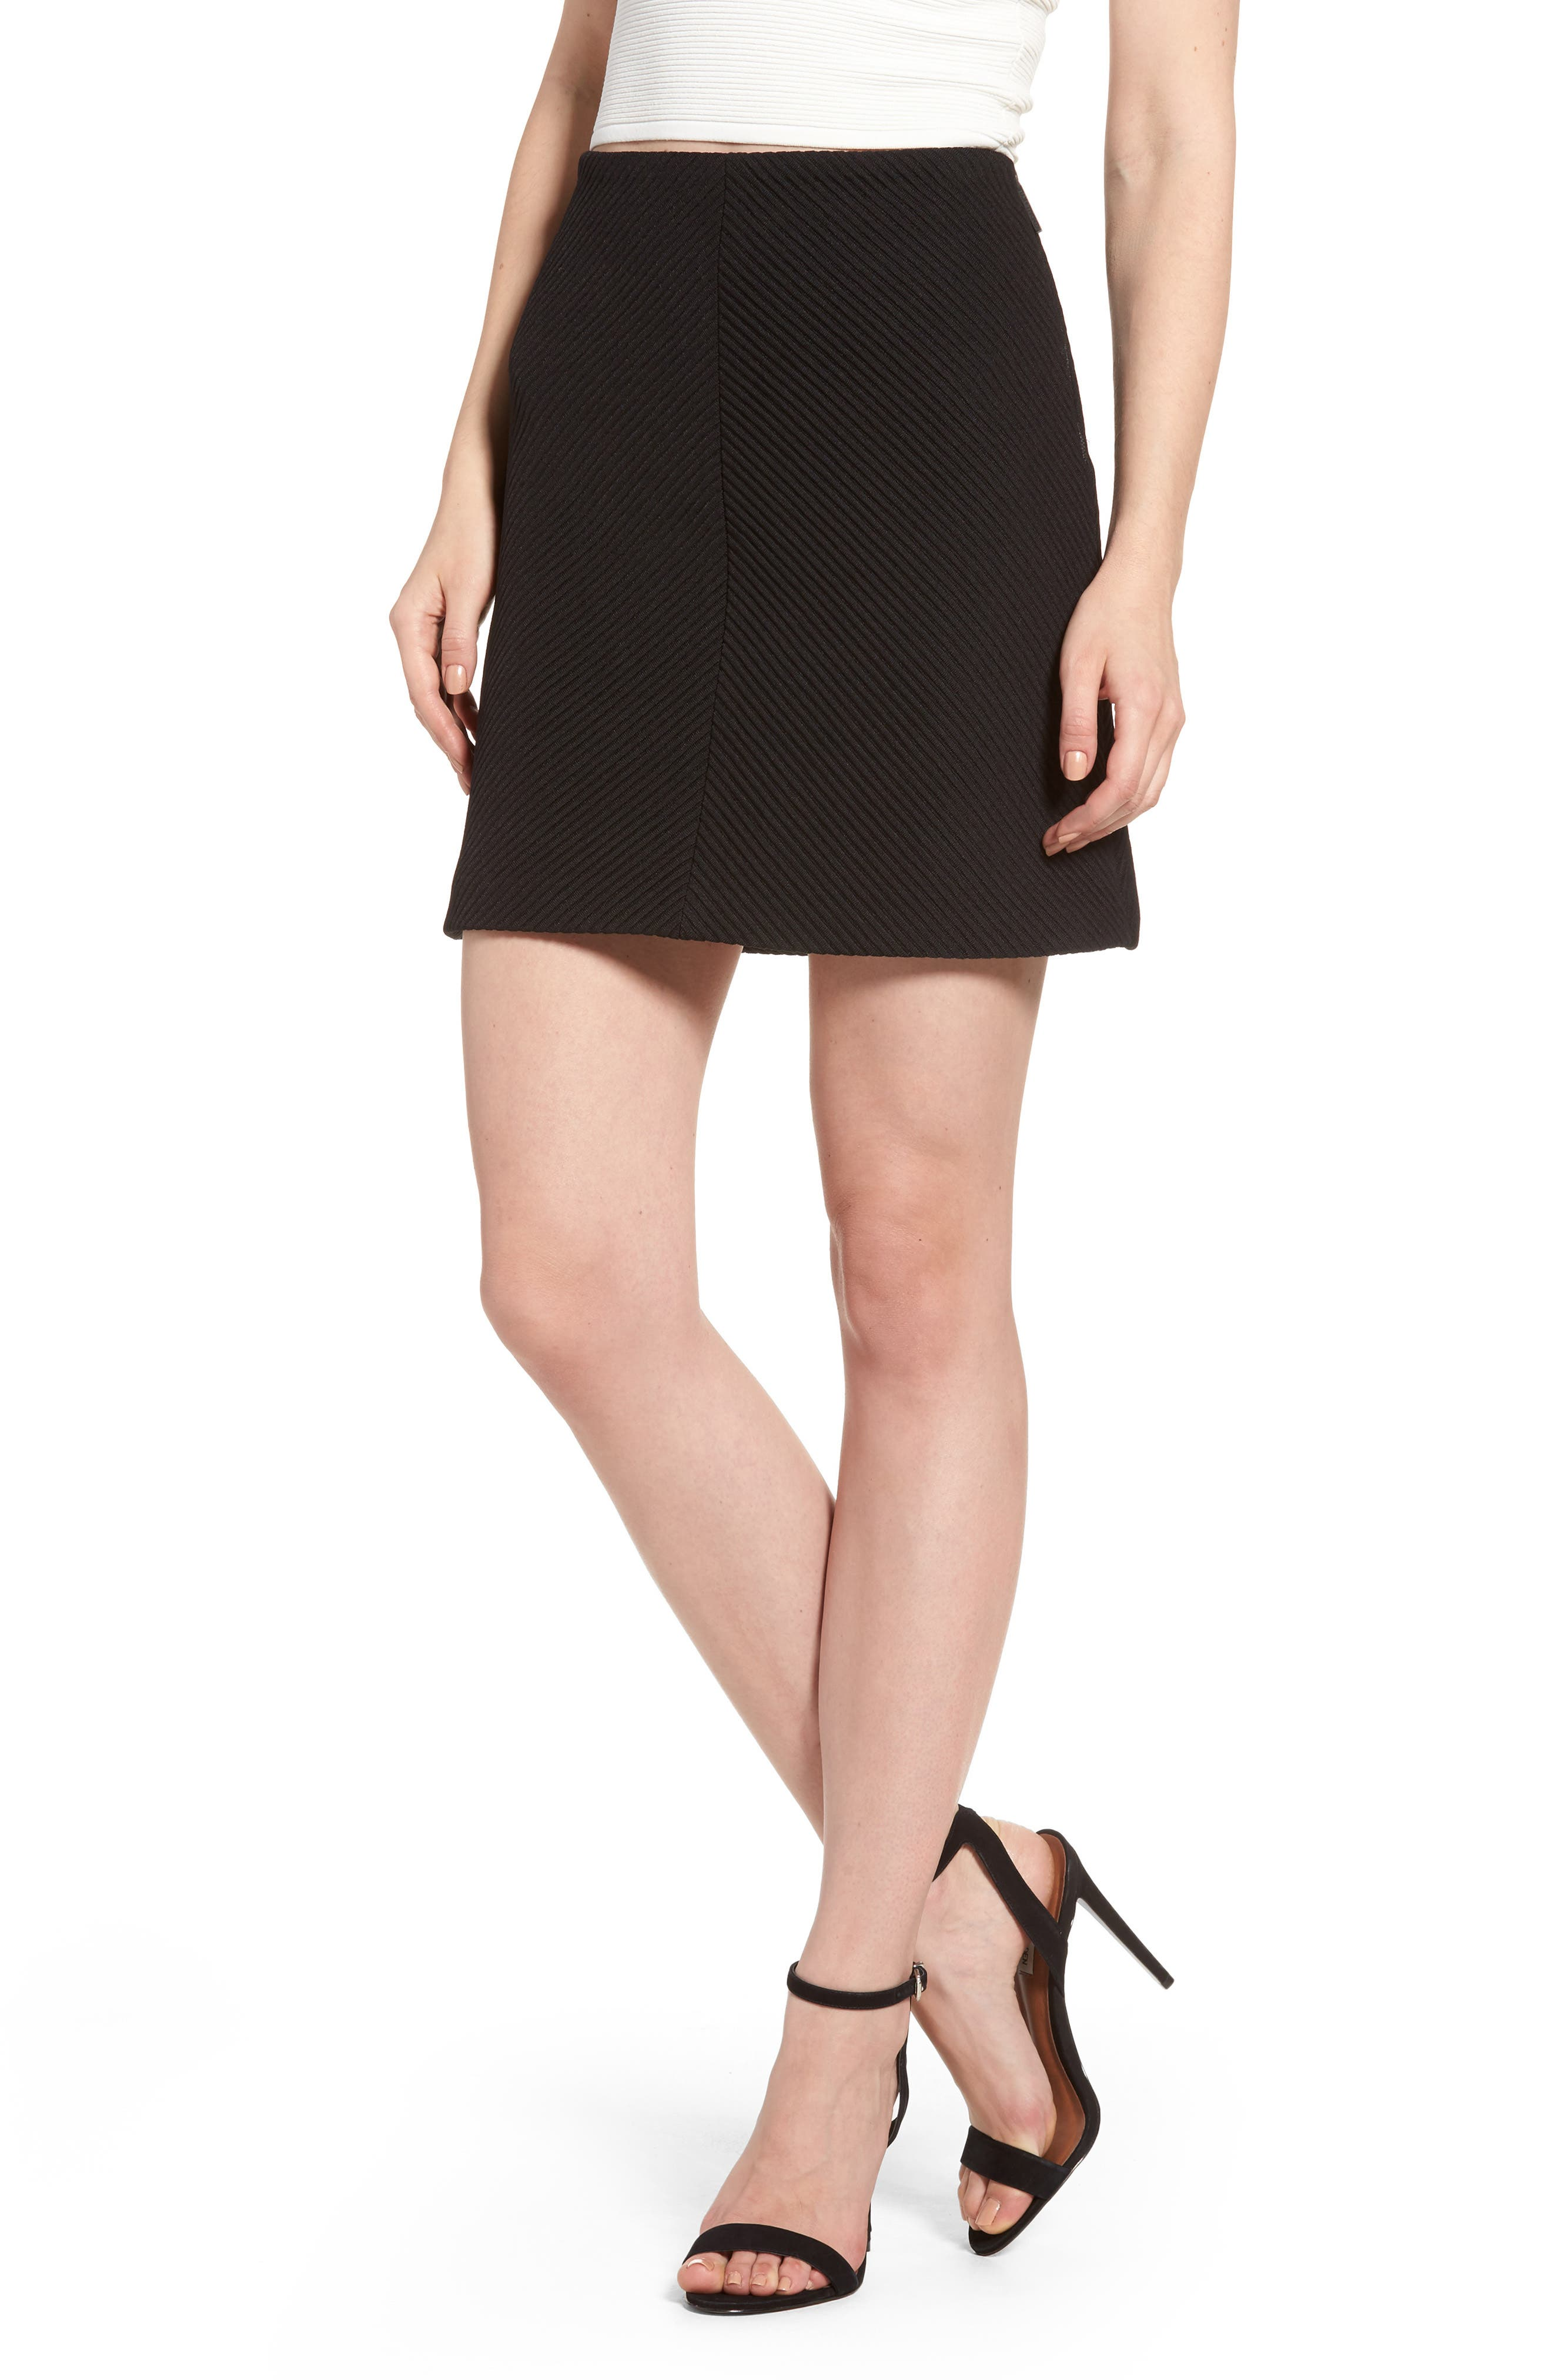 Alternate Image 1 Selected - KENDALL + KYLIE A-Line Knit Miniskirt